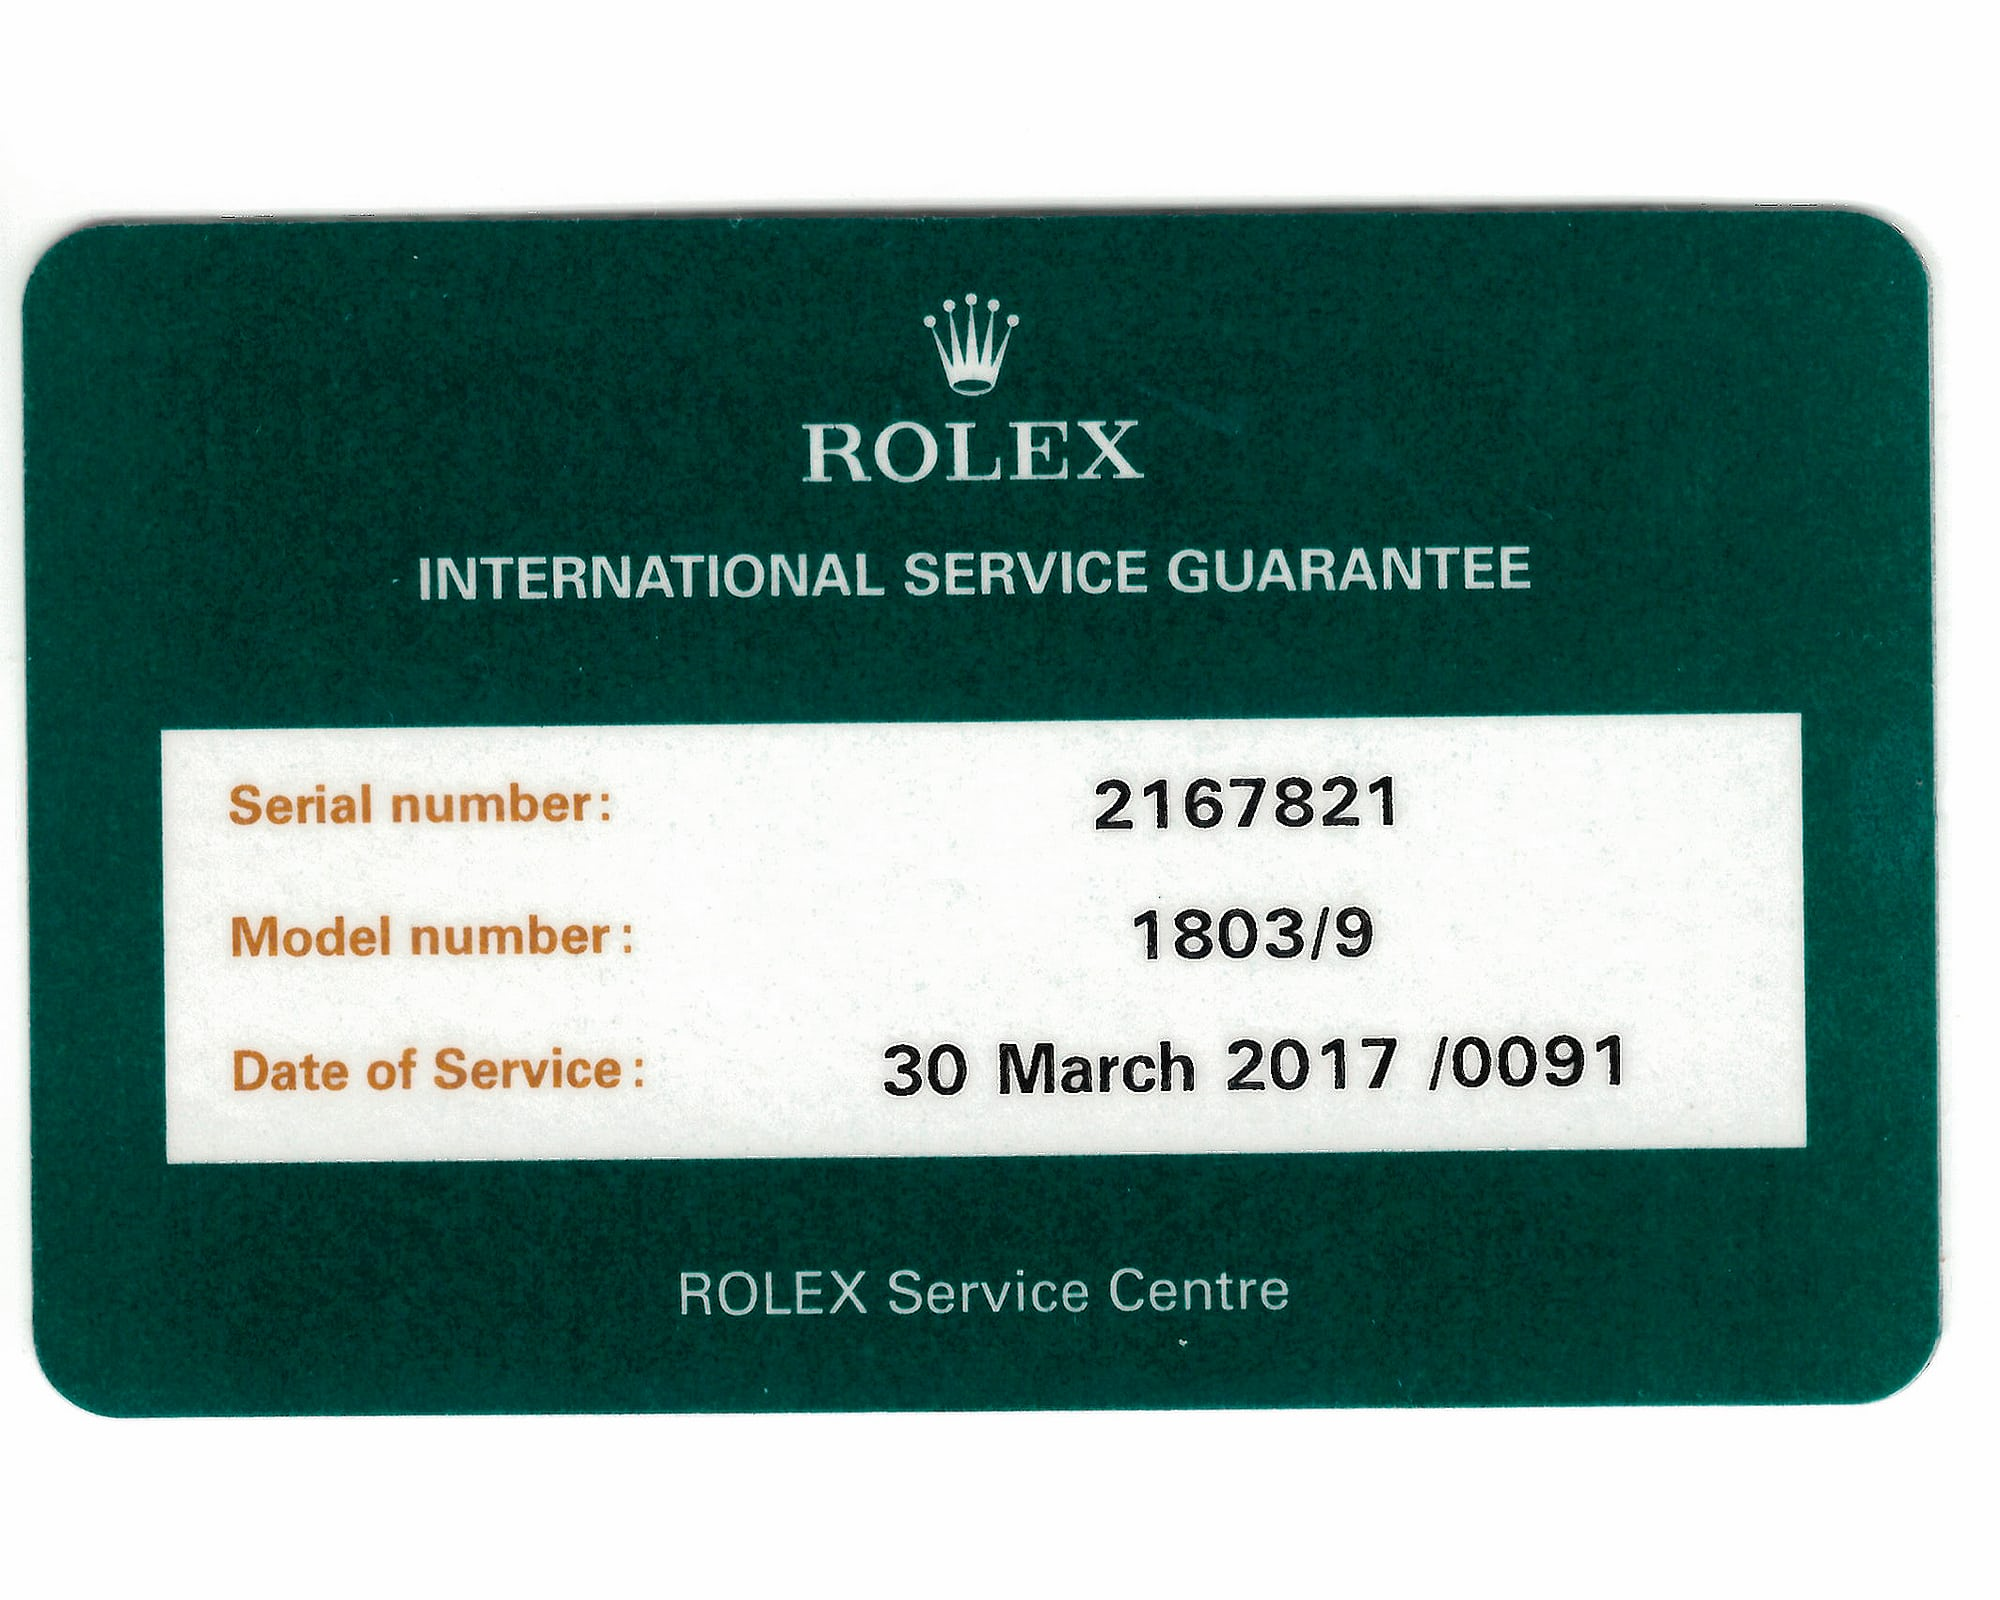 <p>The new service card provide by Rolex.</p>